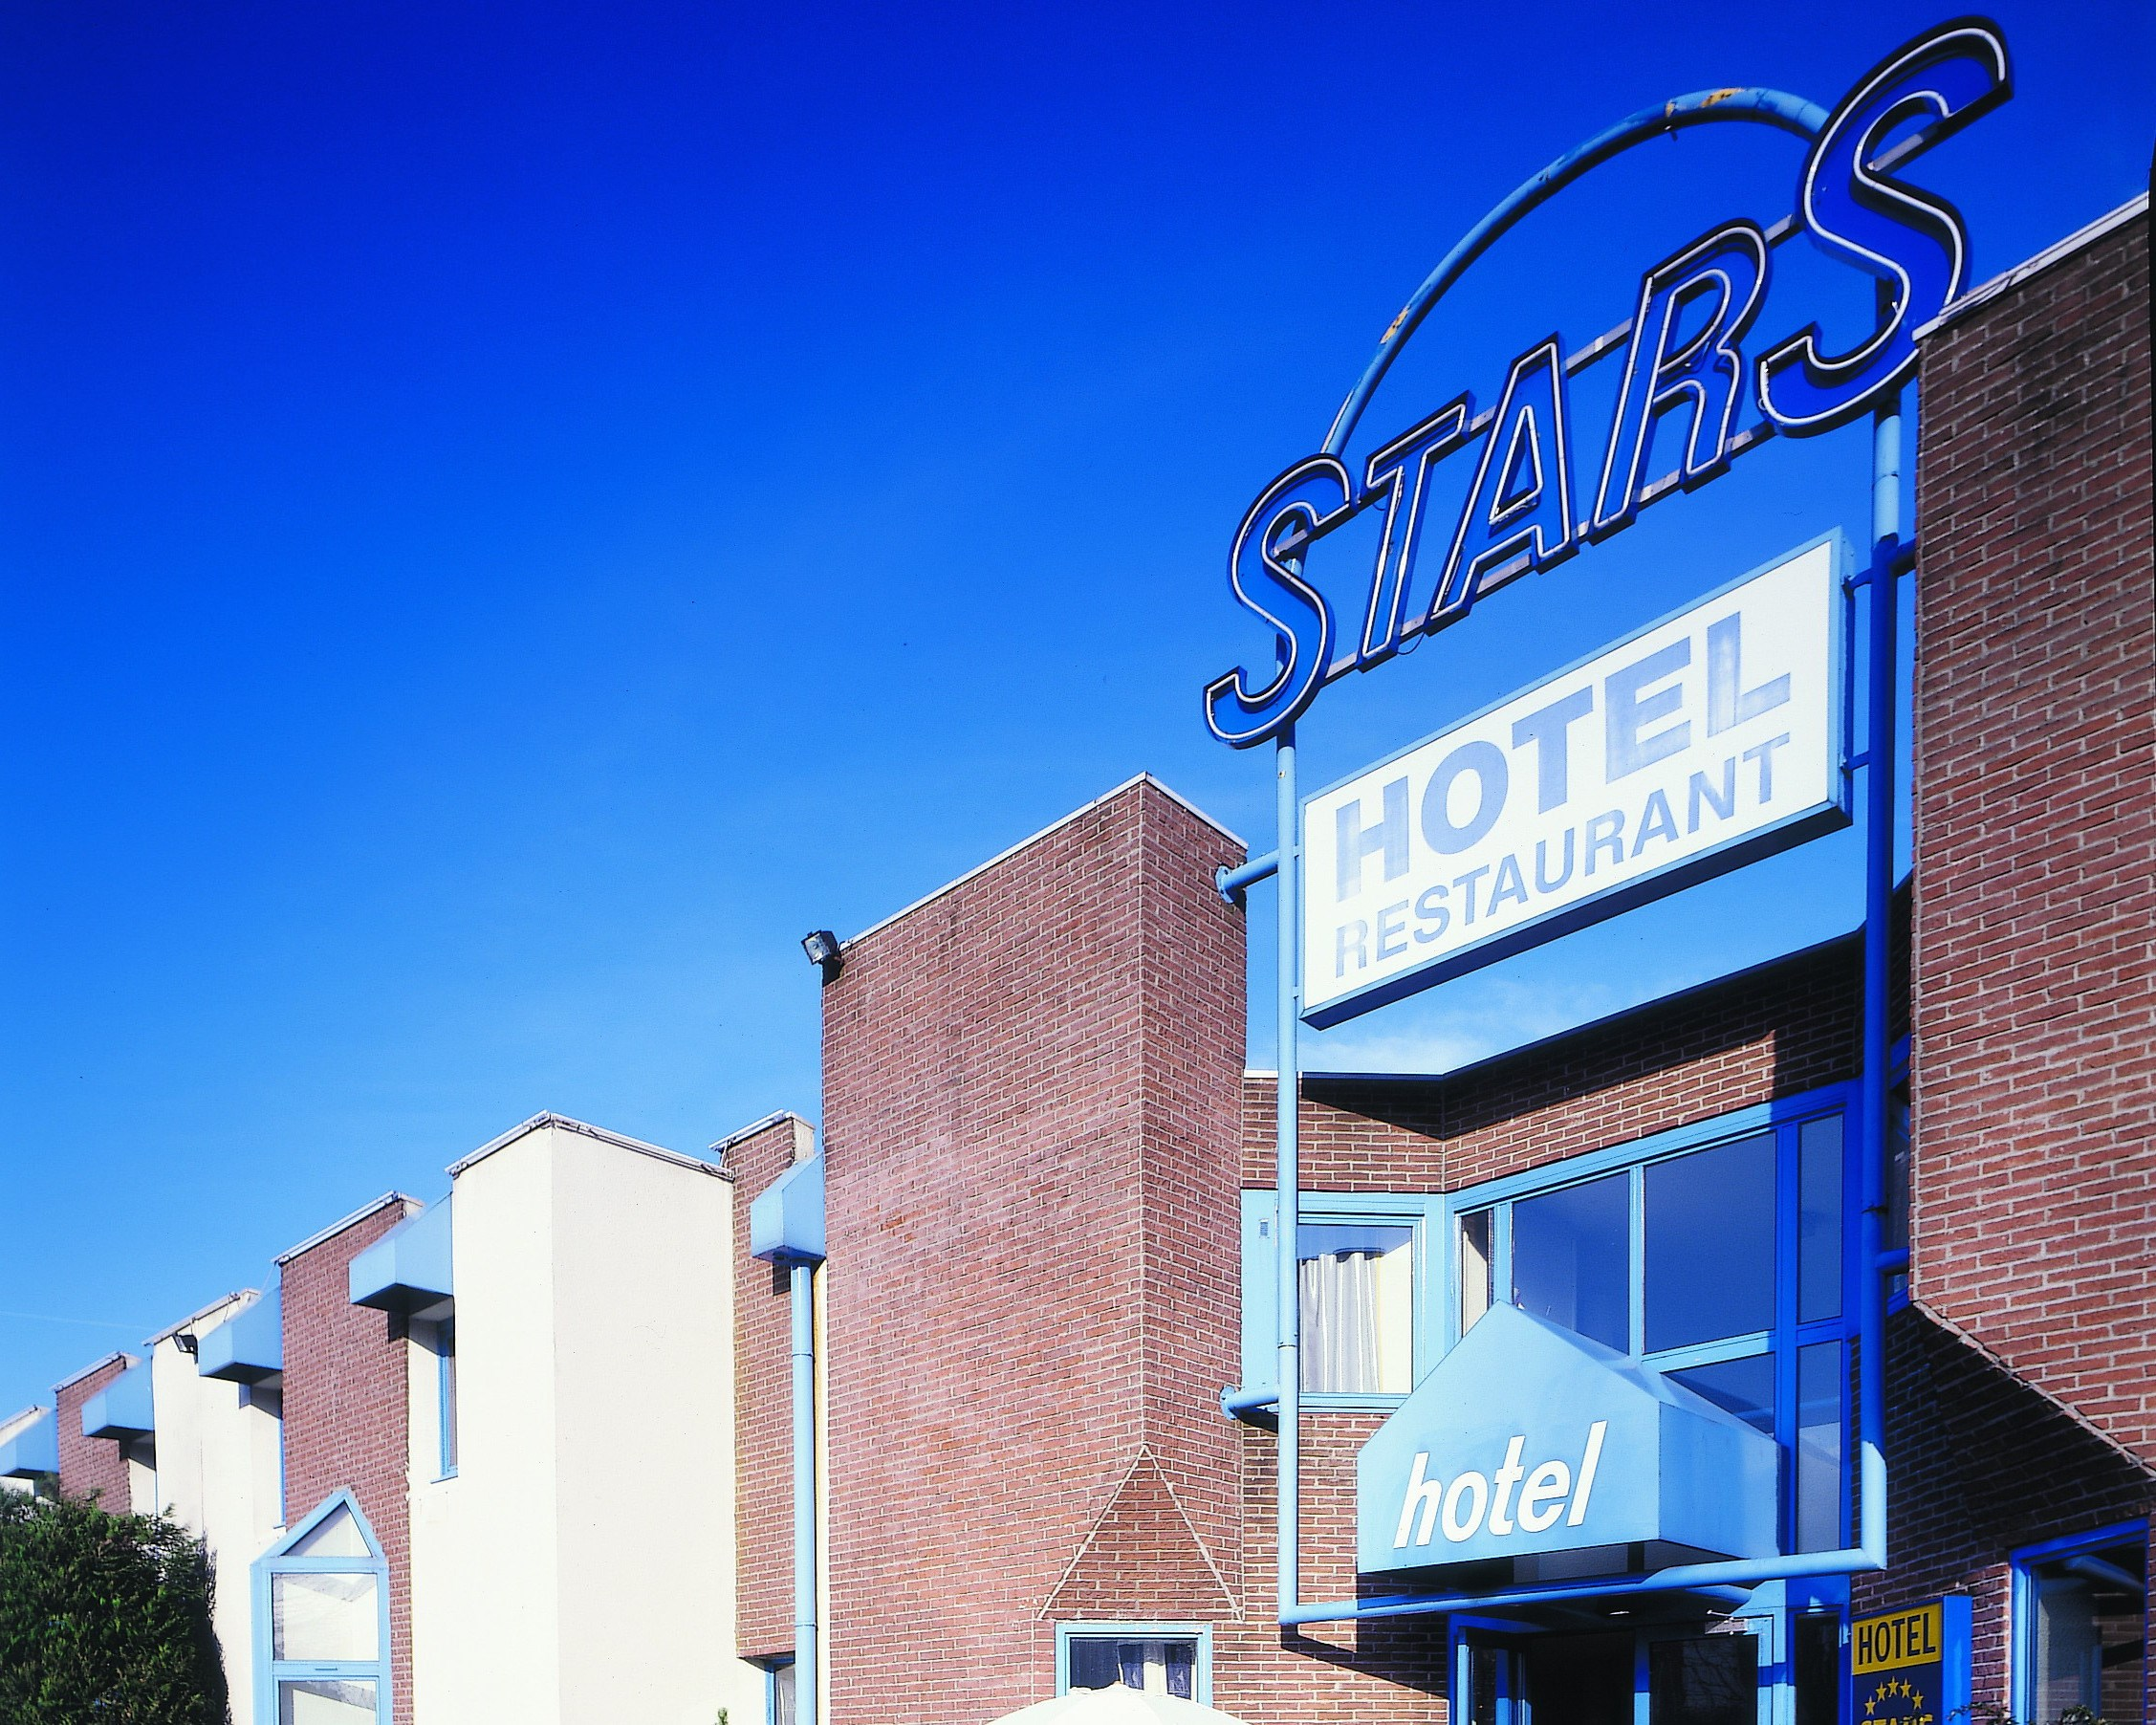 Cheap Hotel Stars Lille France